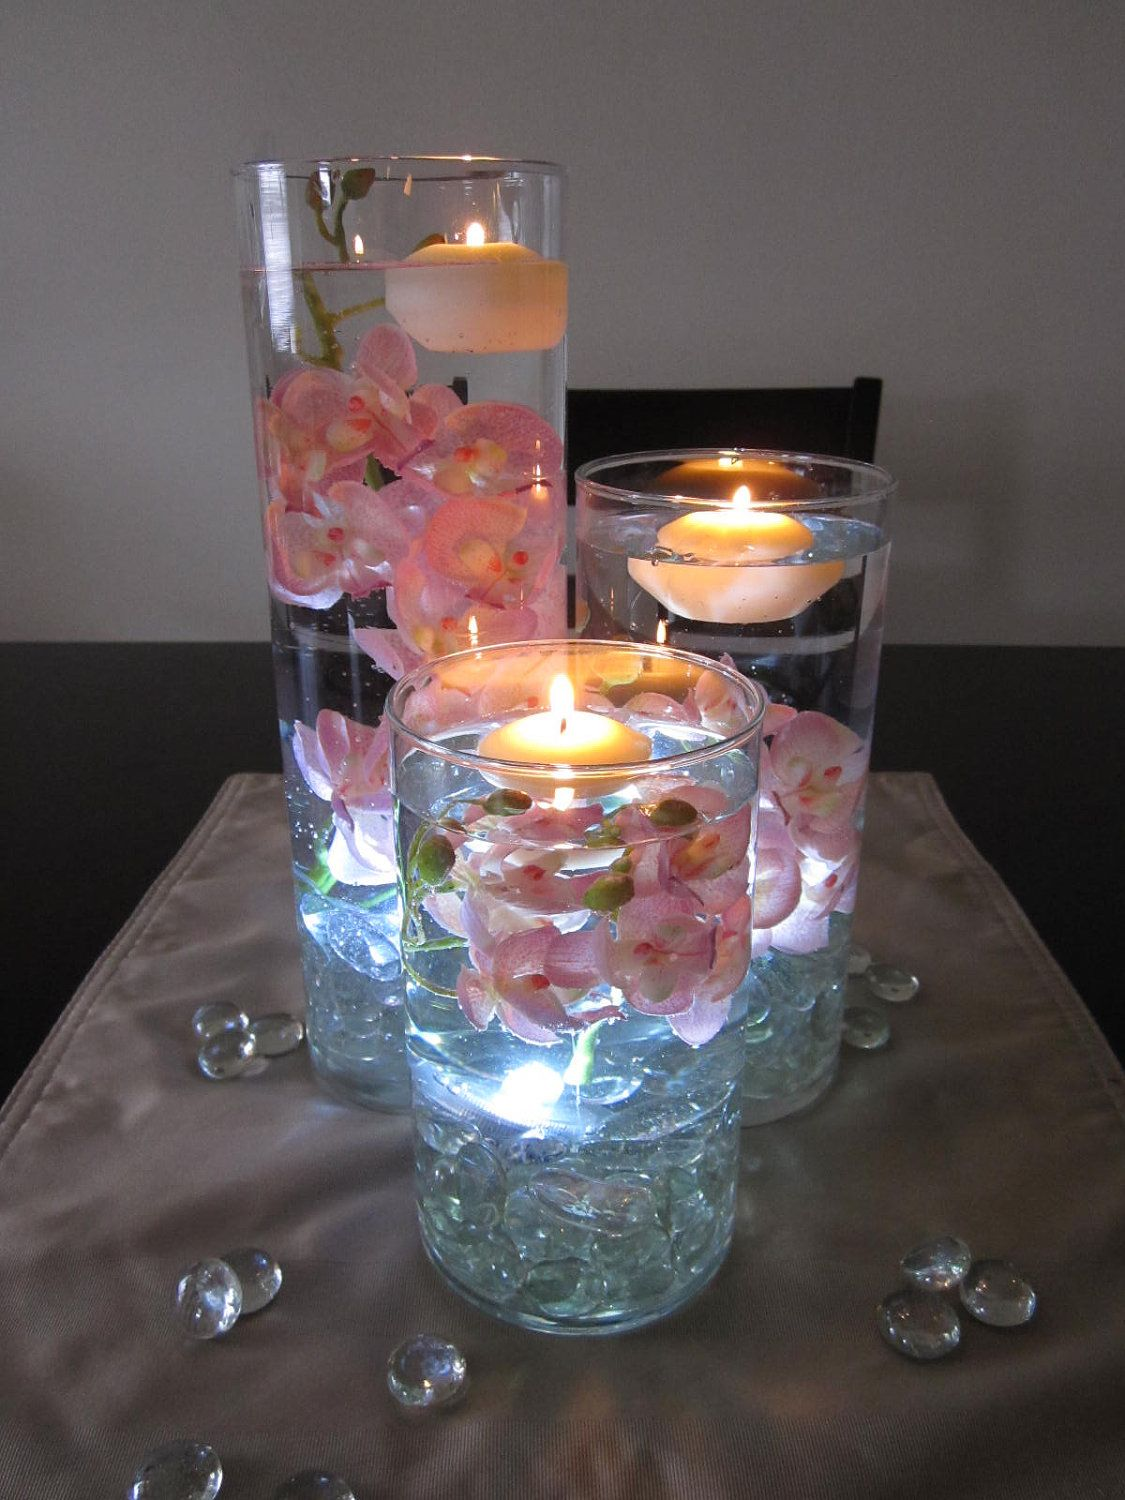 clipart freeuse stock Transparent candle wedding. Pin on beach